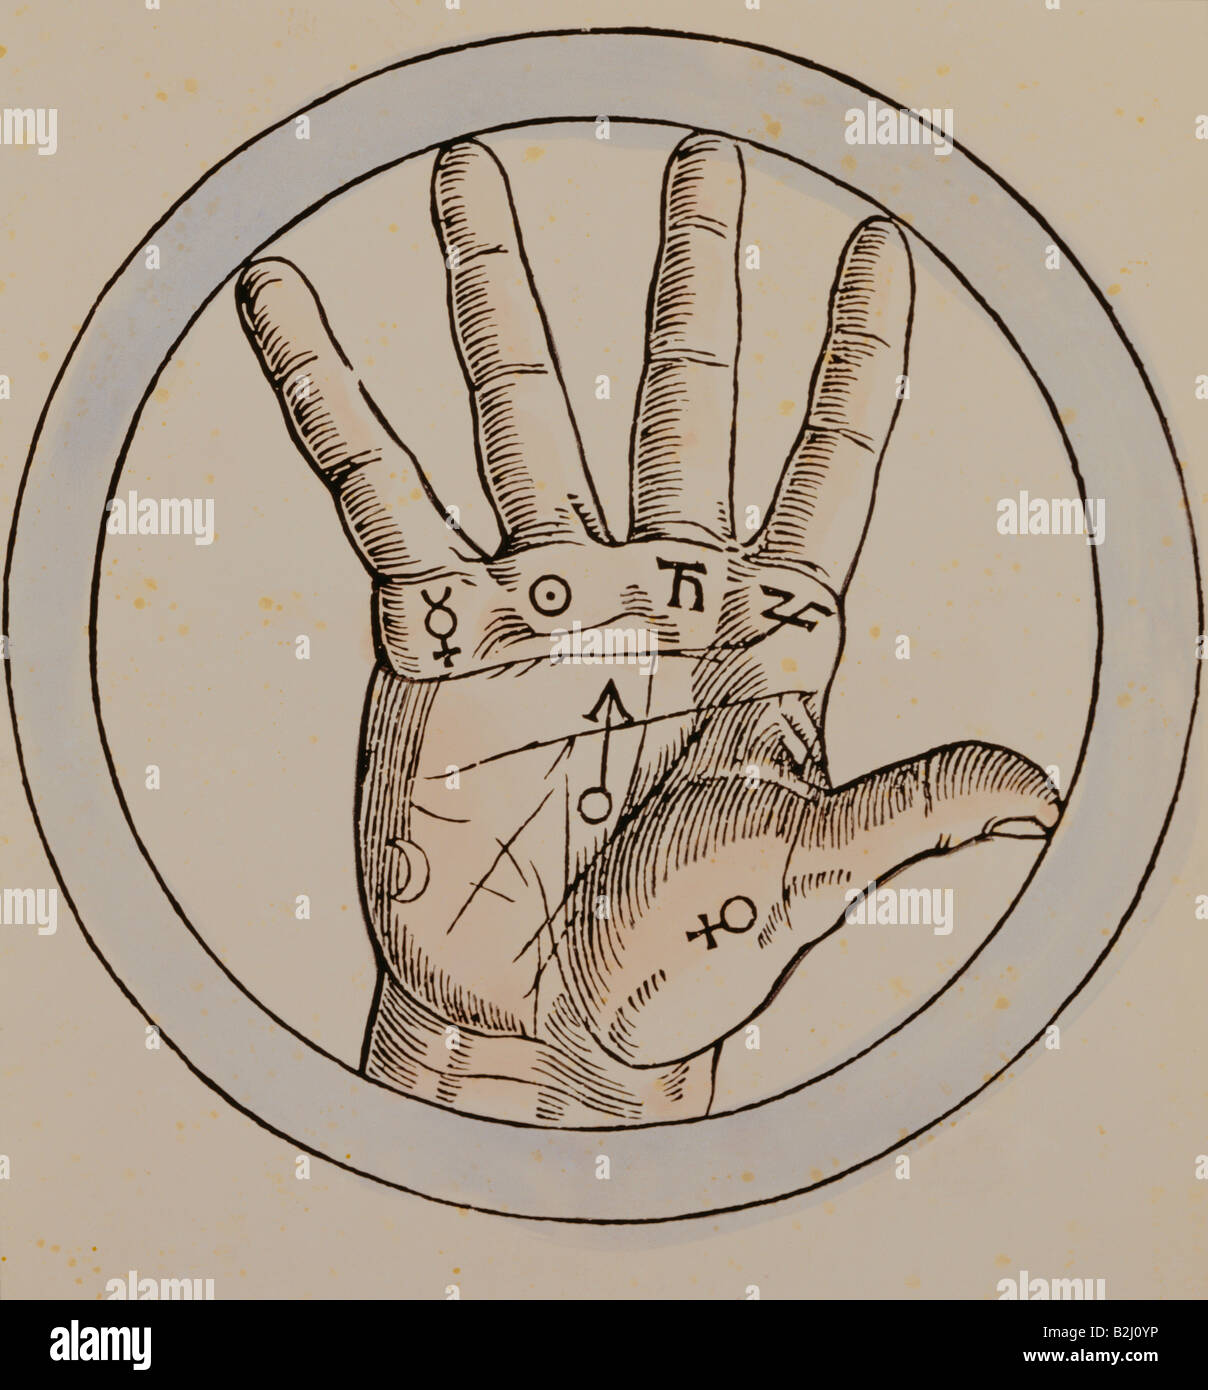 superstition, chiromancy, hand as microcosmic analogy to the planets, by Agrippa von Nettelsheim (1486 - 1535), - Stock Image